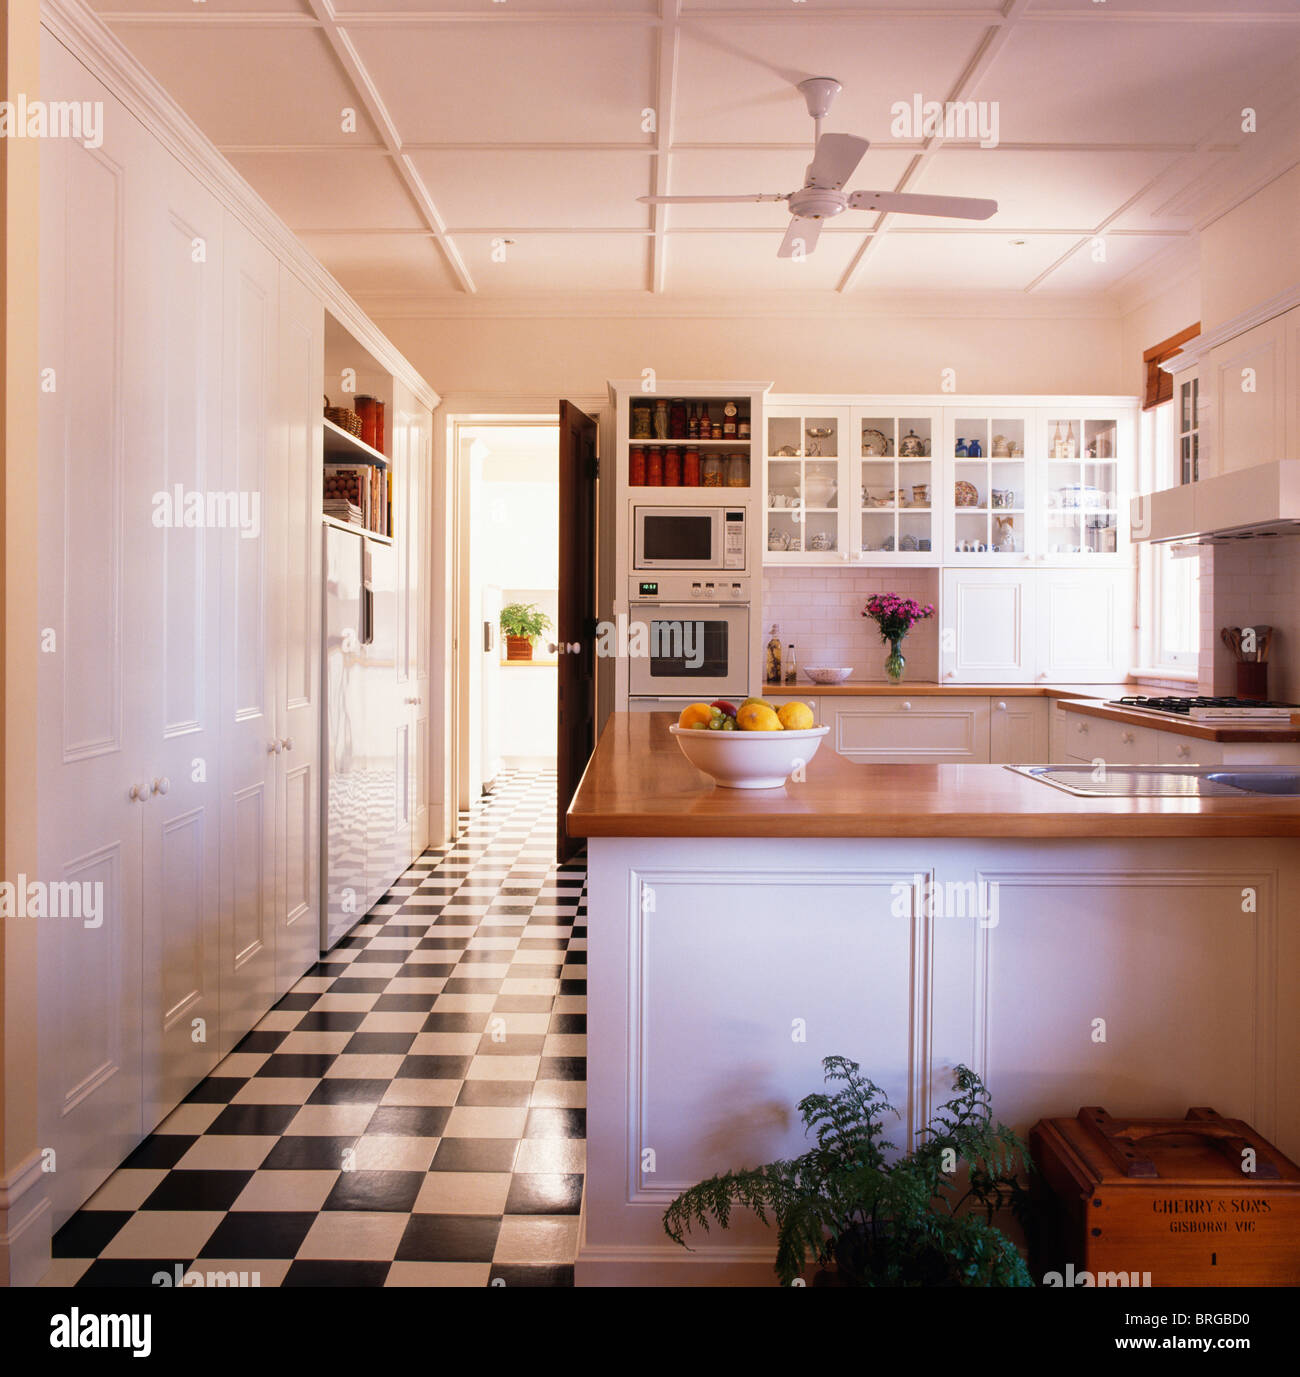 stock photo blackwhite checkerboard vinyl flooring in large modern white kitchen kitchen flooring vinyl Black white checkerboard vinyl flooring in large modern white kitchen with wooden worktops on fitted units